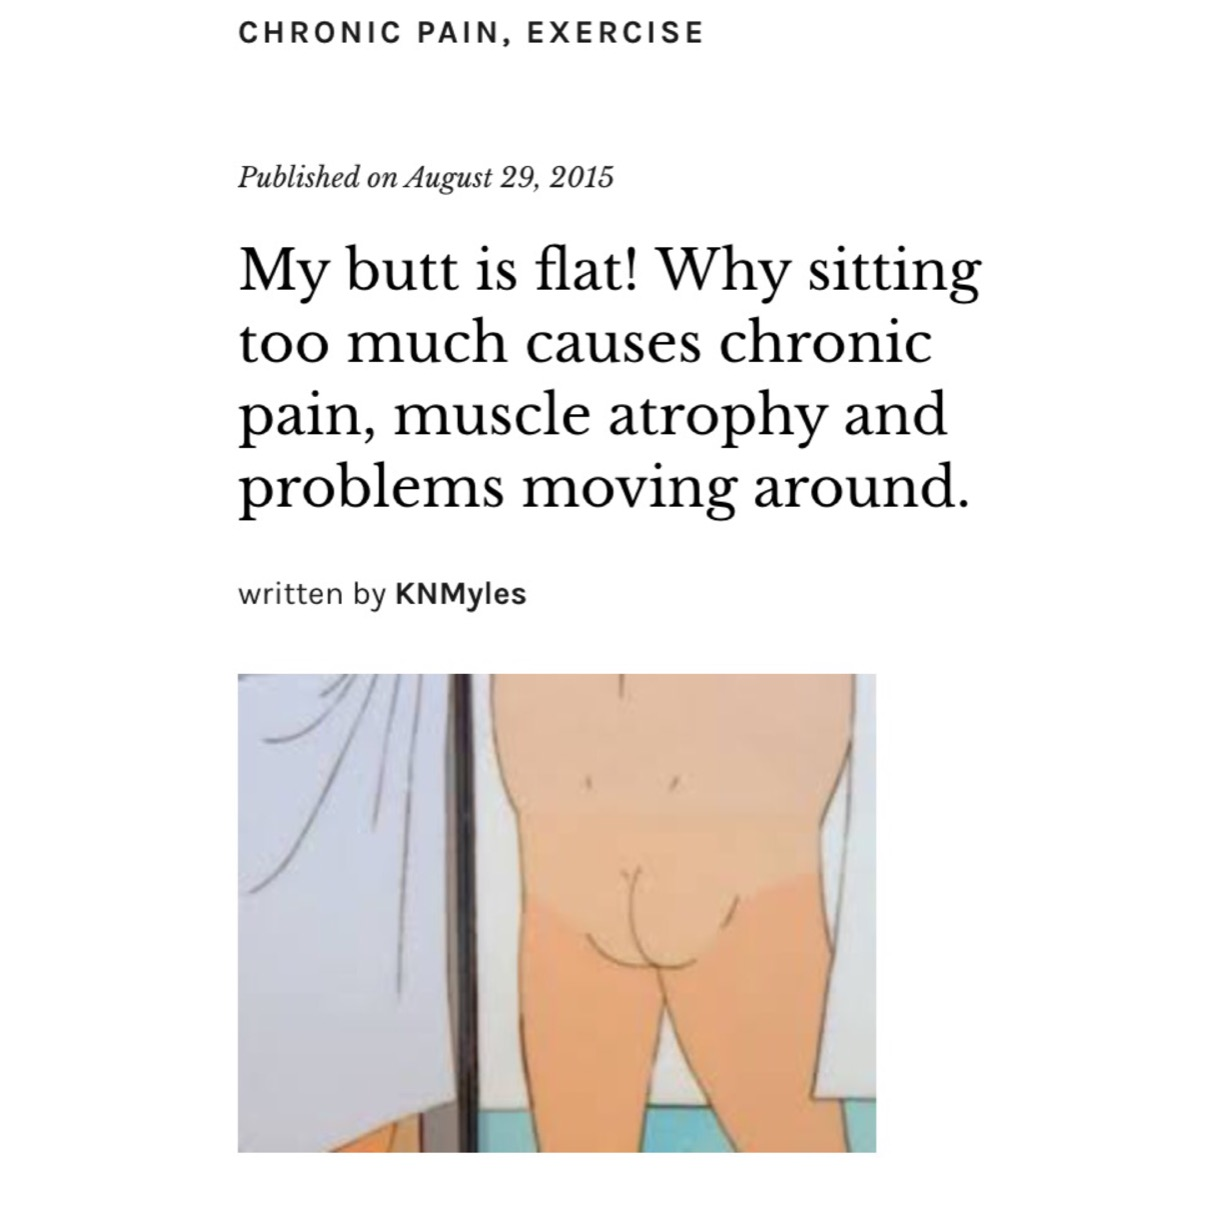 My butt is flat! Why sitting too much causes chronic pain, muscle atrophy and problems moving around.